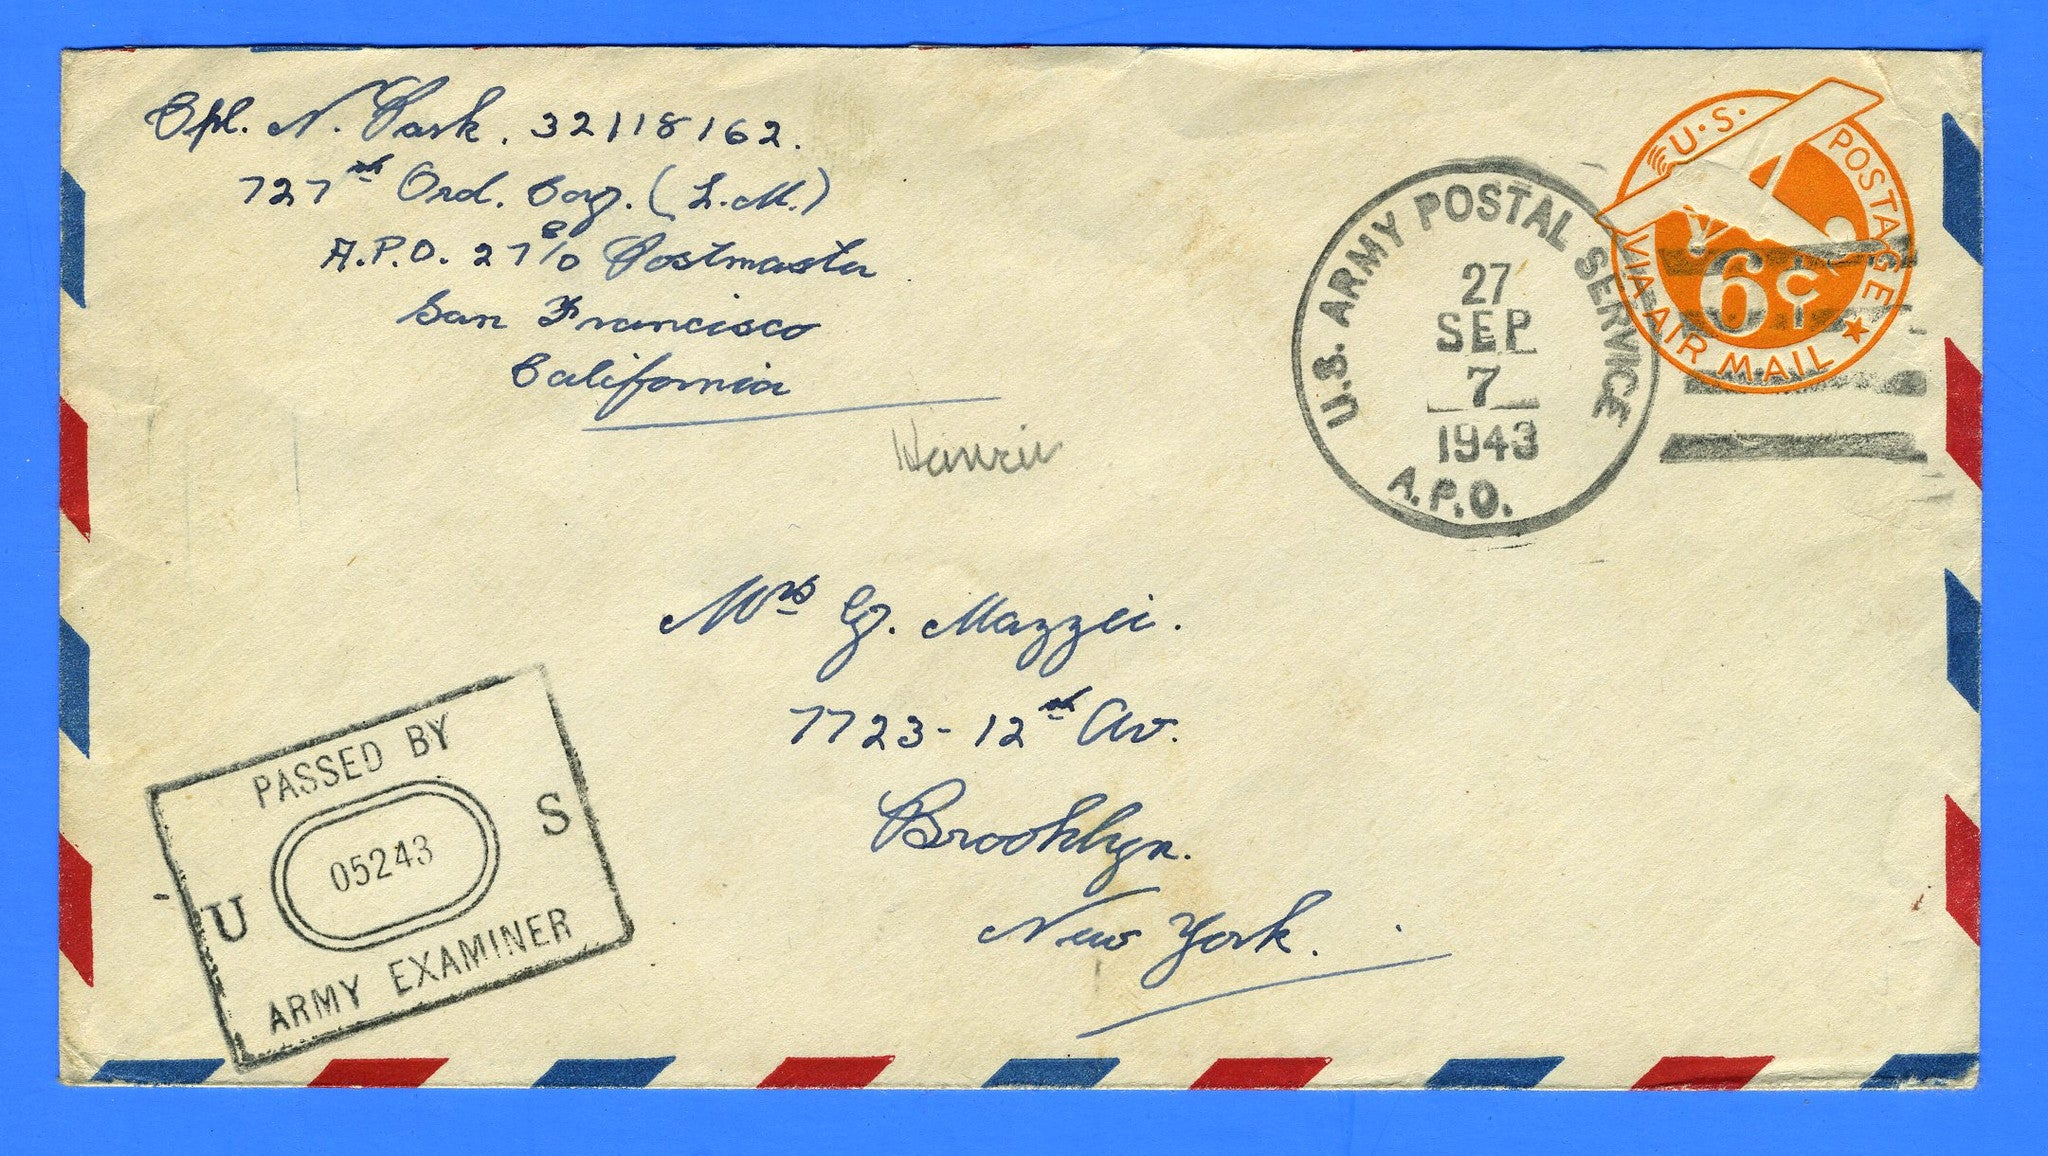 Soldier's Censored Mail APO 27 Schofield Barracks, Oahu, Territory of Hawaii September 27, 1943